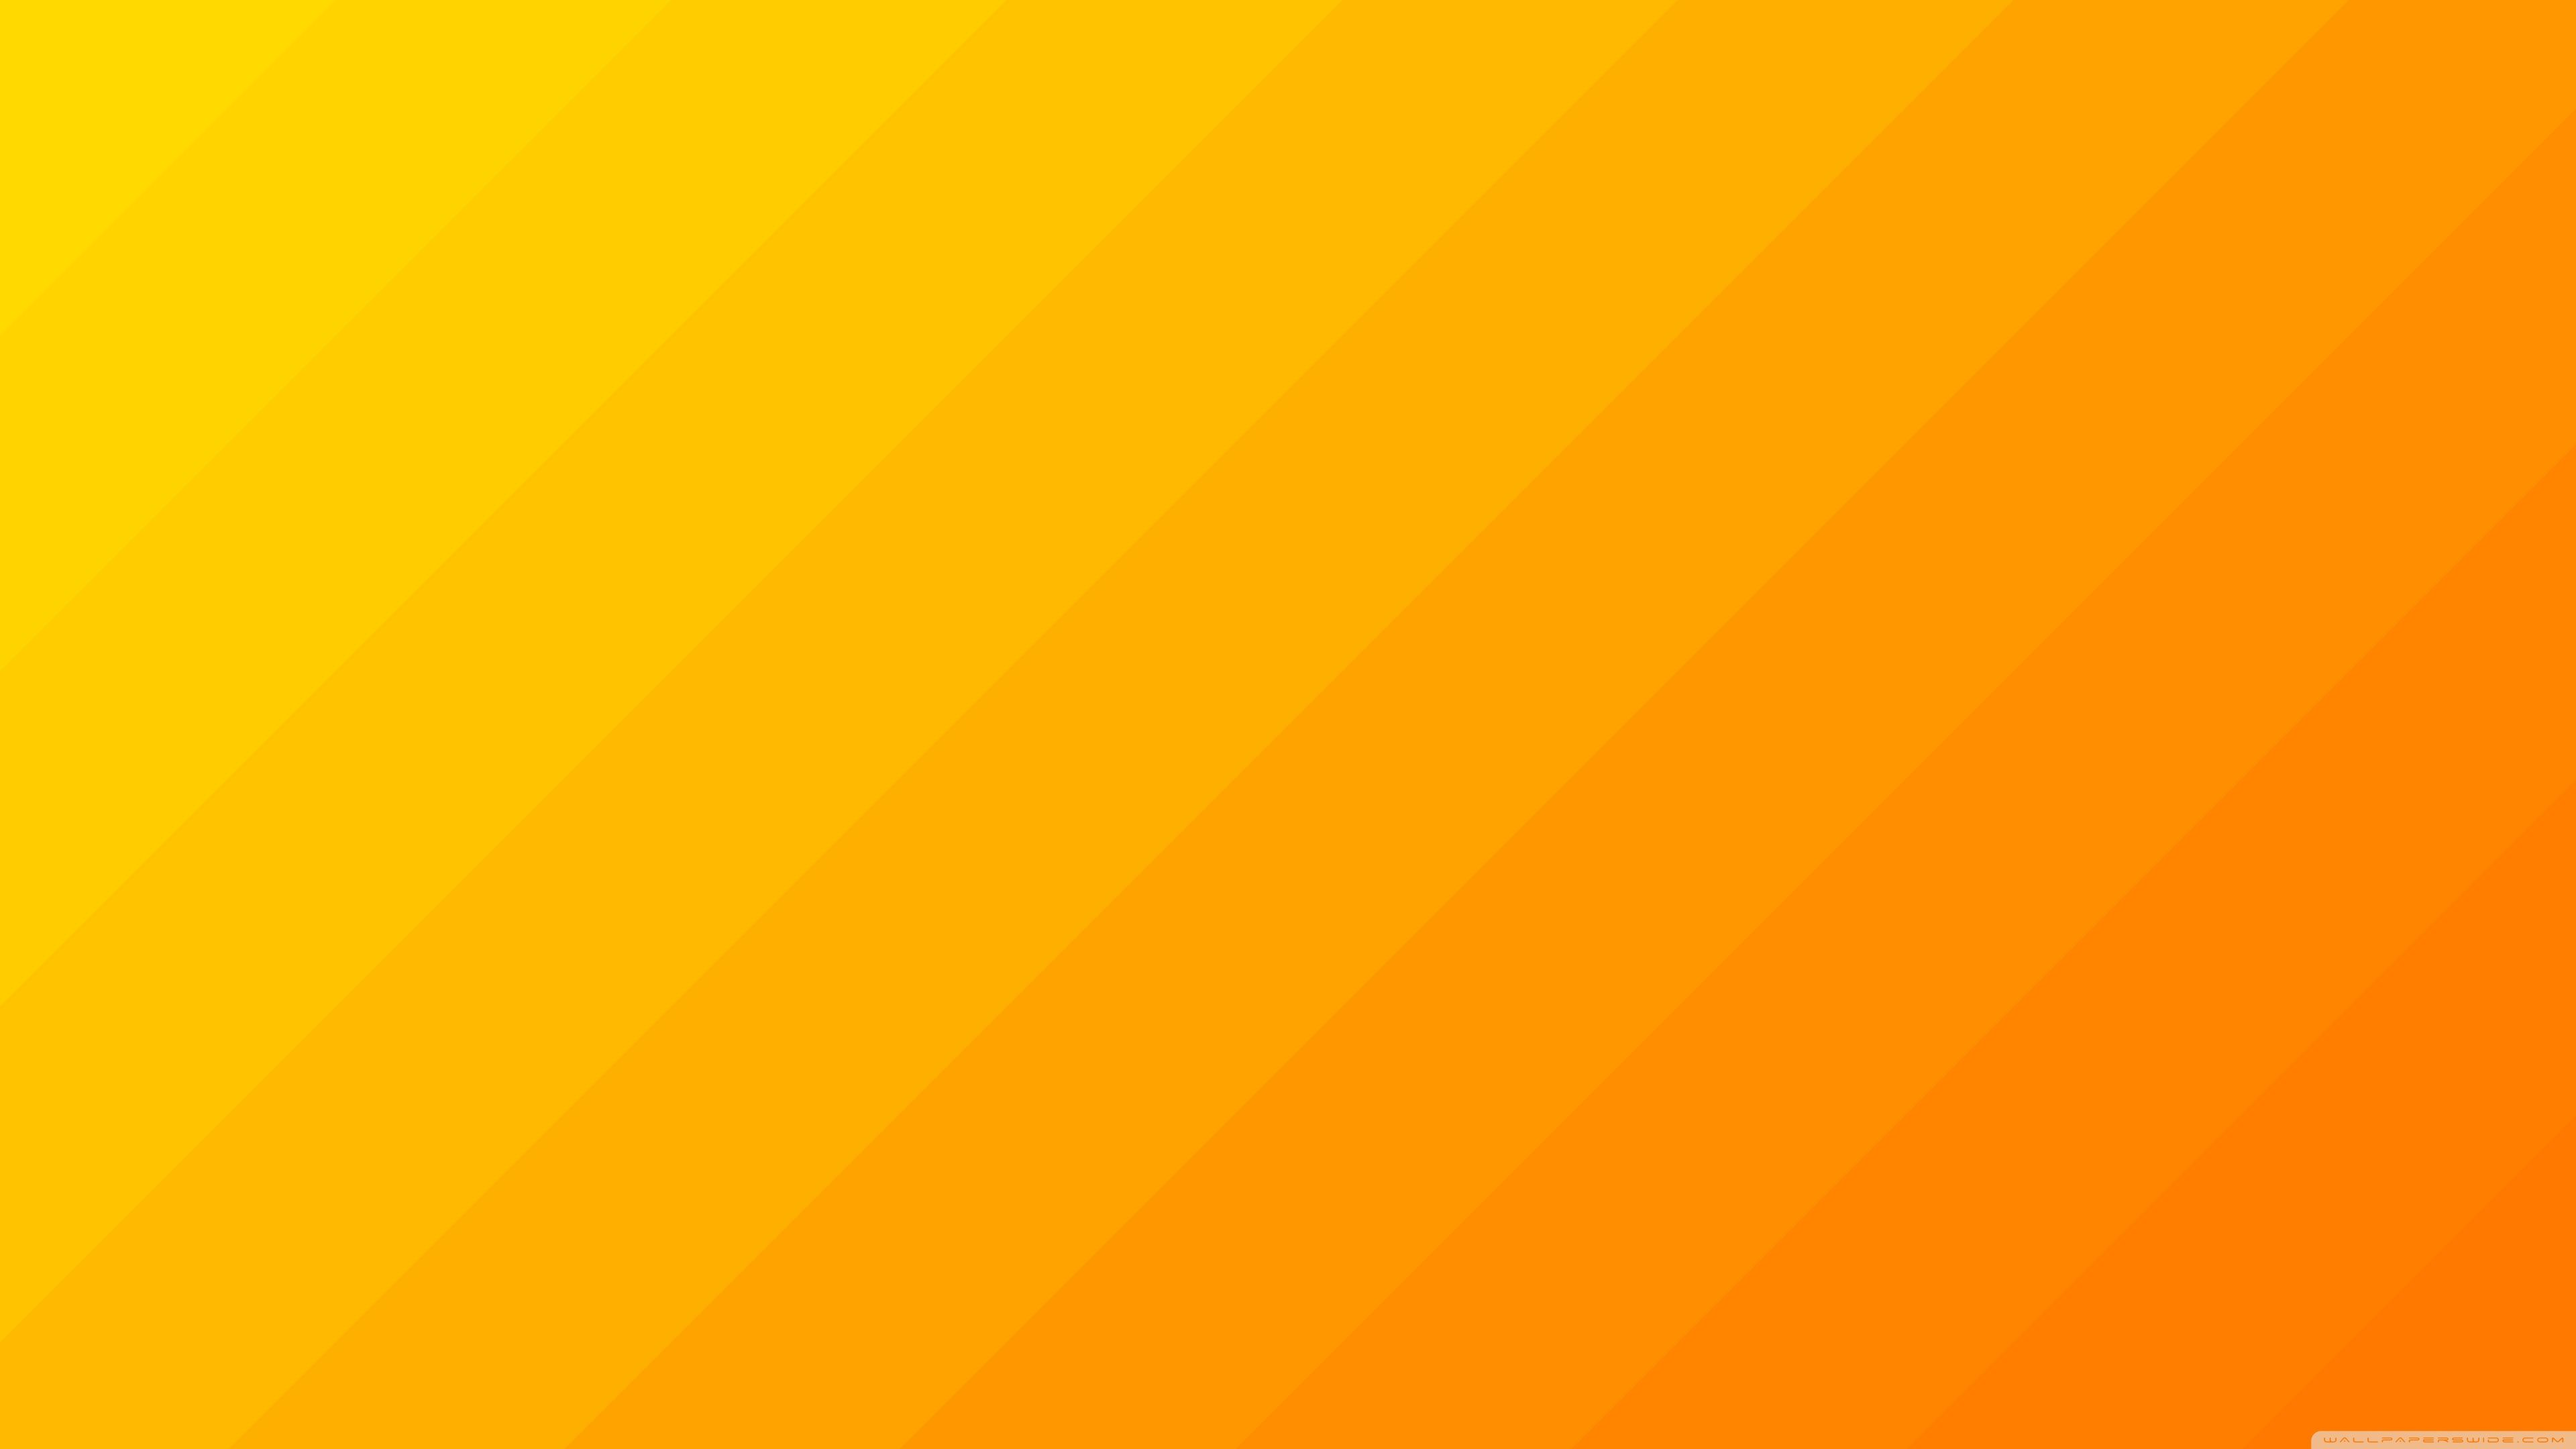 3840 X 2160 Yellow Wallpapers - Top ...